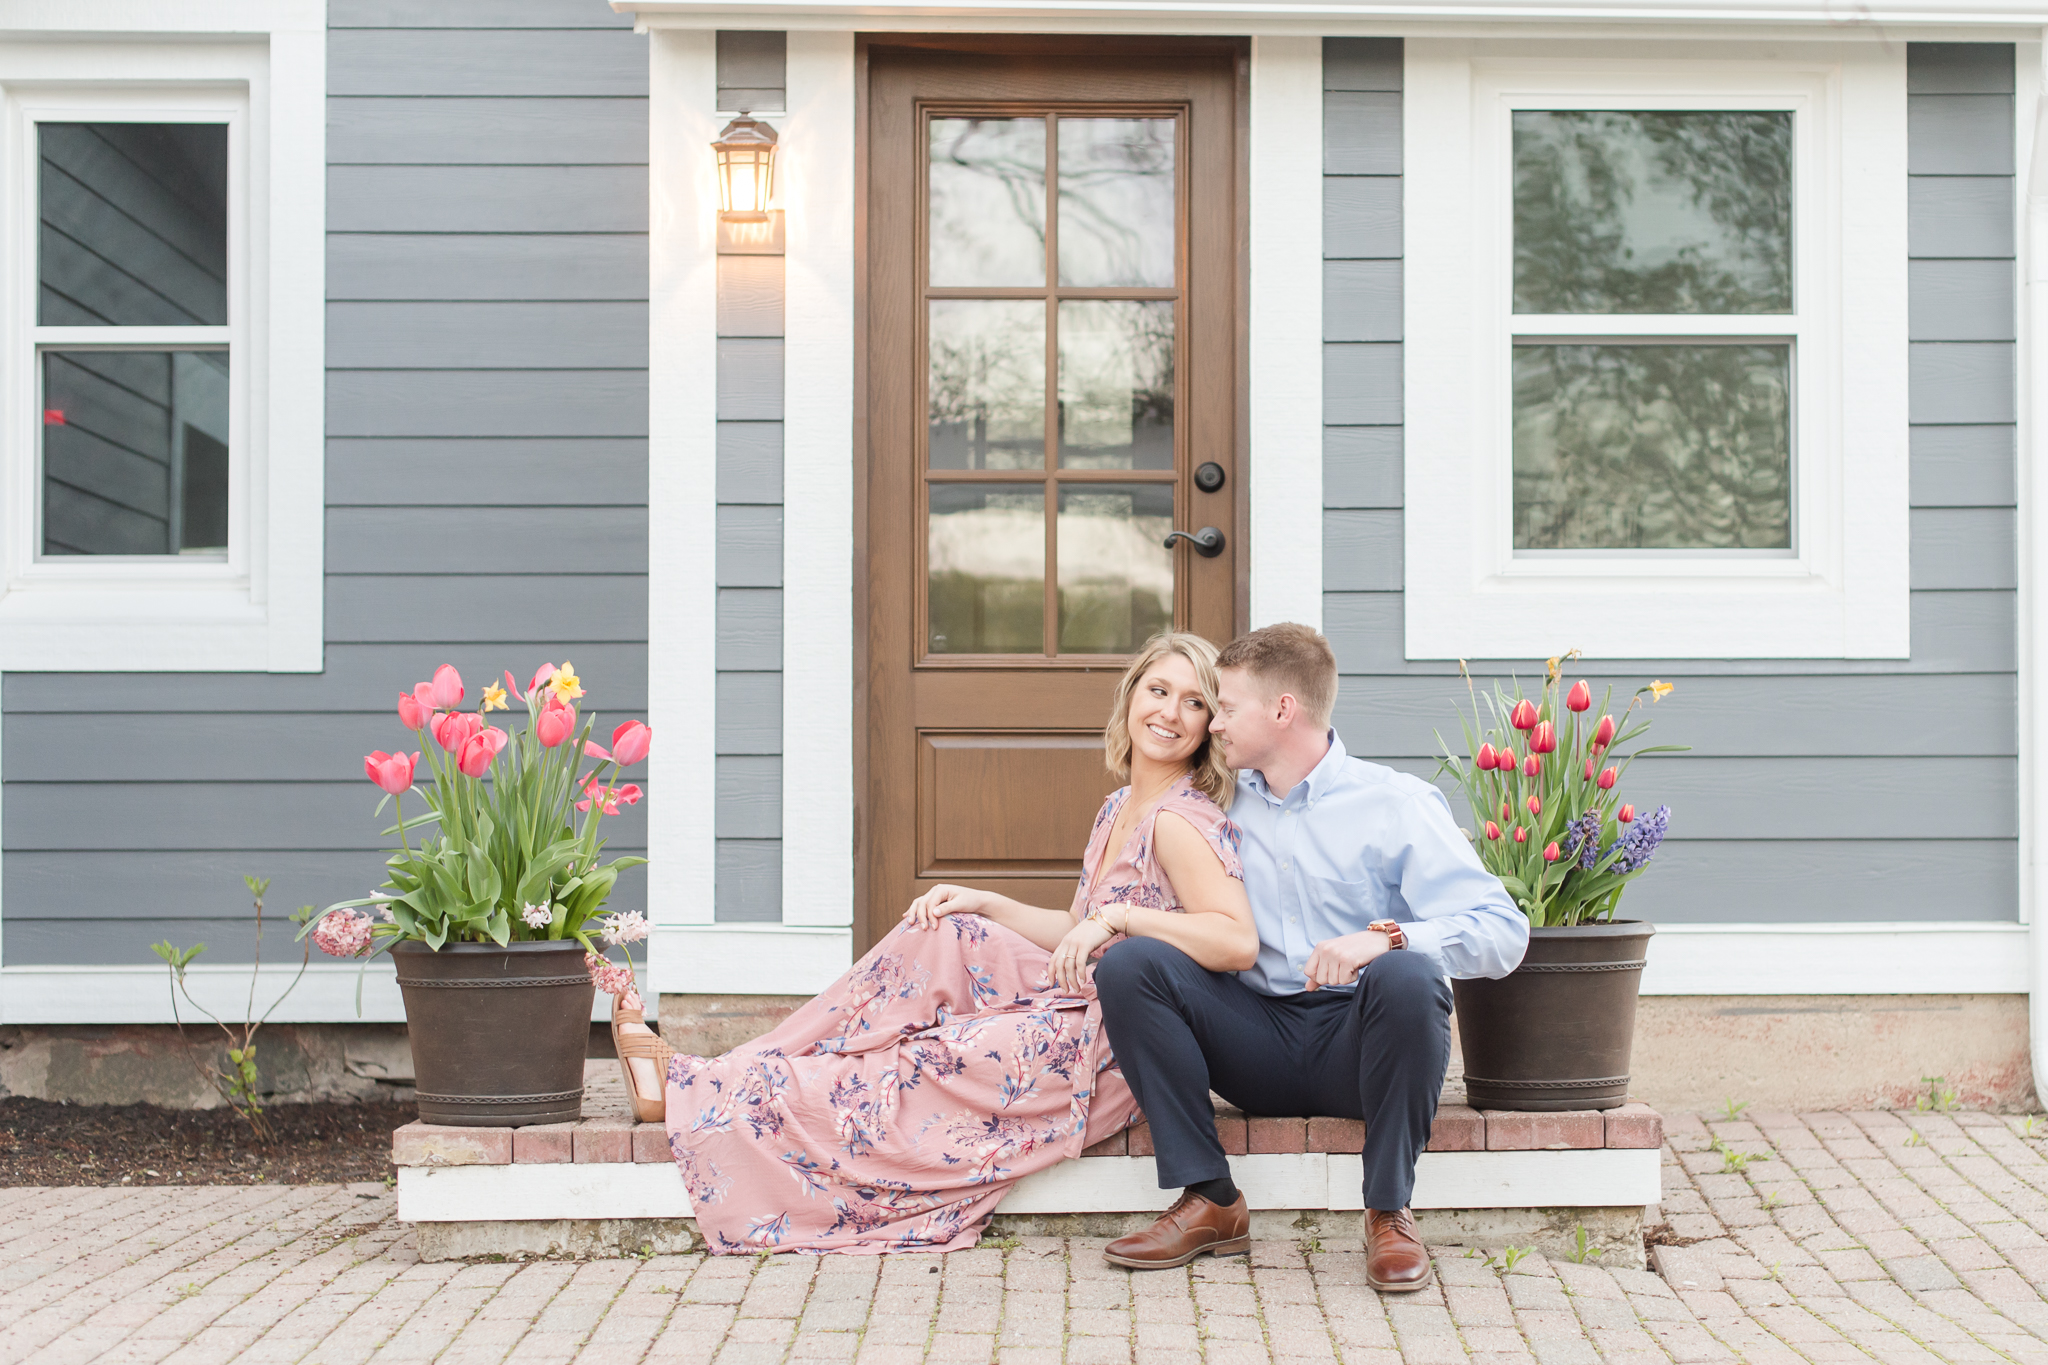 Richie Woods Nature Preserve and Mustard Seed Gardens Engagement Session Wedding Photos-52.jpg